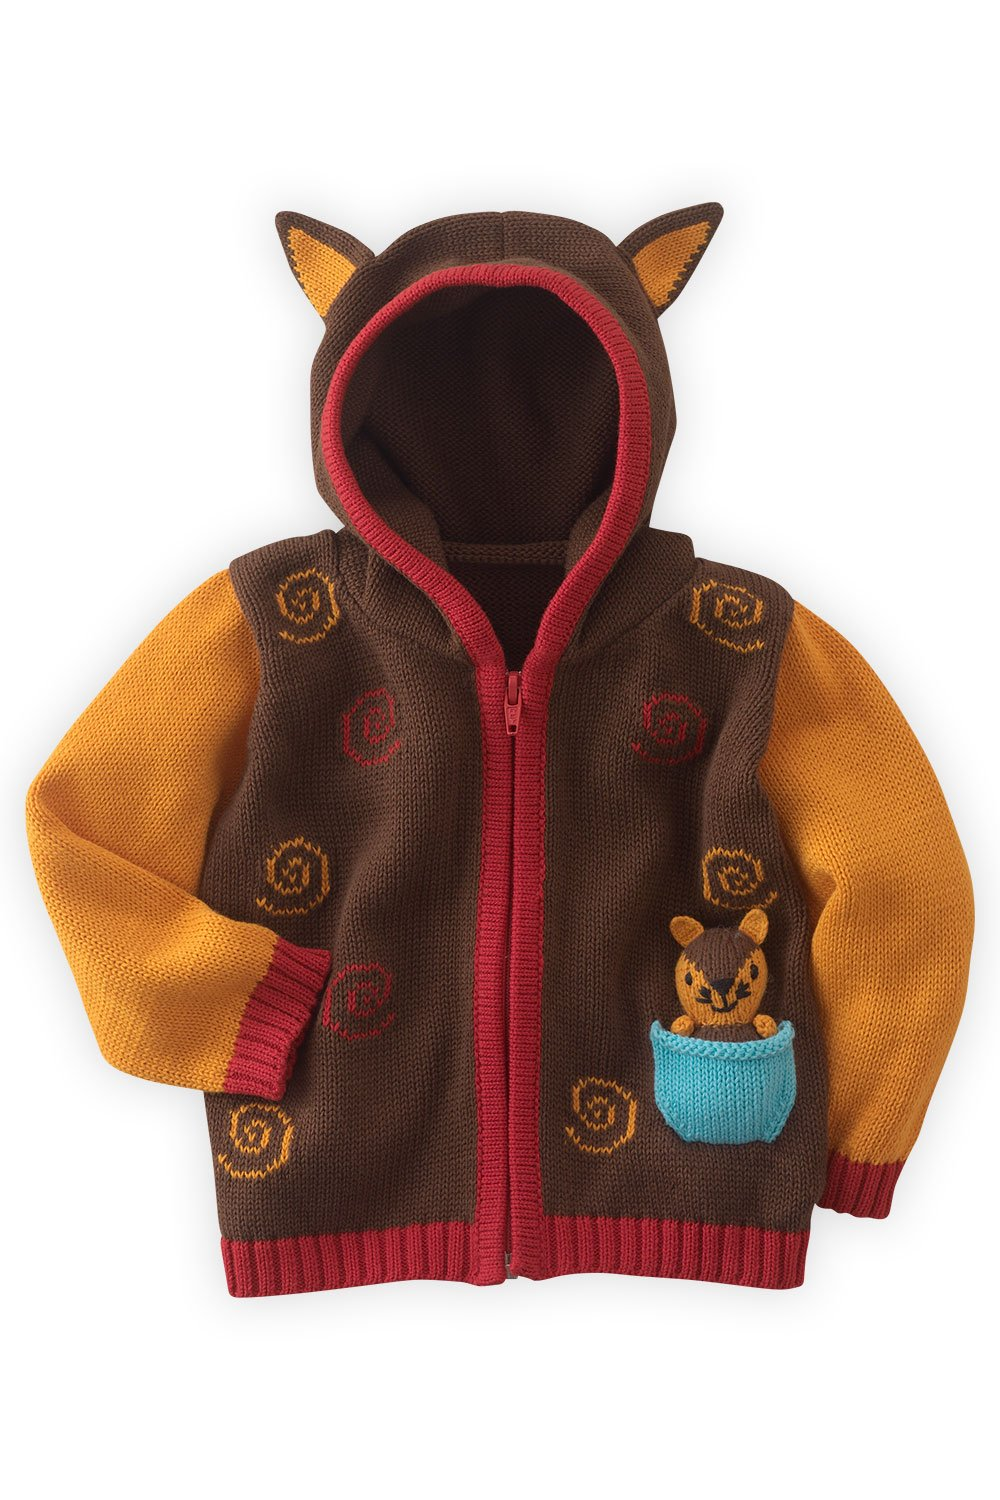 Joobles Organic Baby Cardigan Sweater - Silly The Fox (6-12 Months) Brown by Joobles